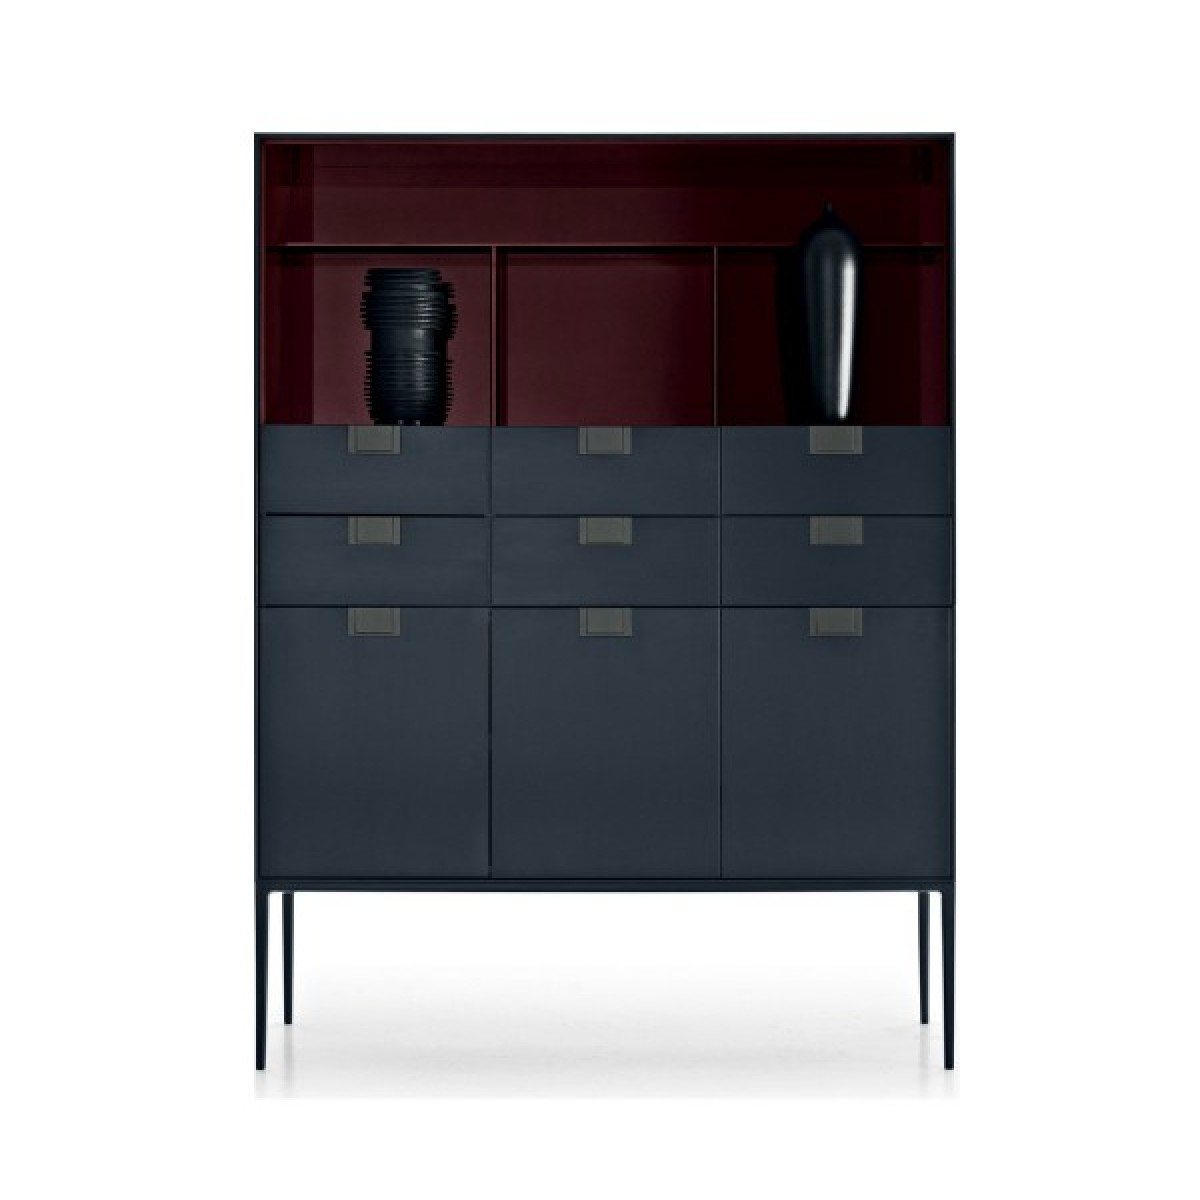 Outlet arredo design e per mobili with outlet arredo for Outlet arredo design online